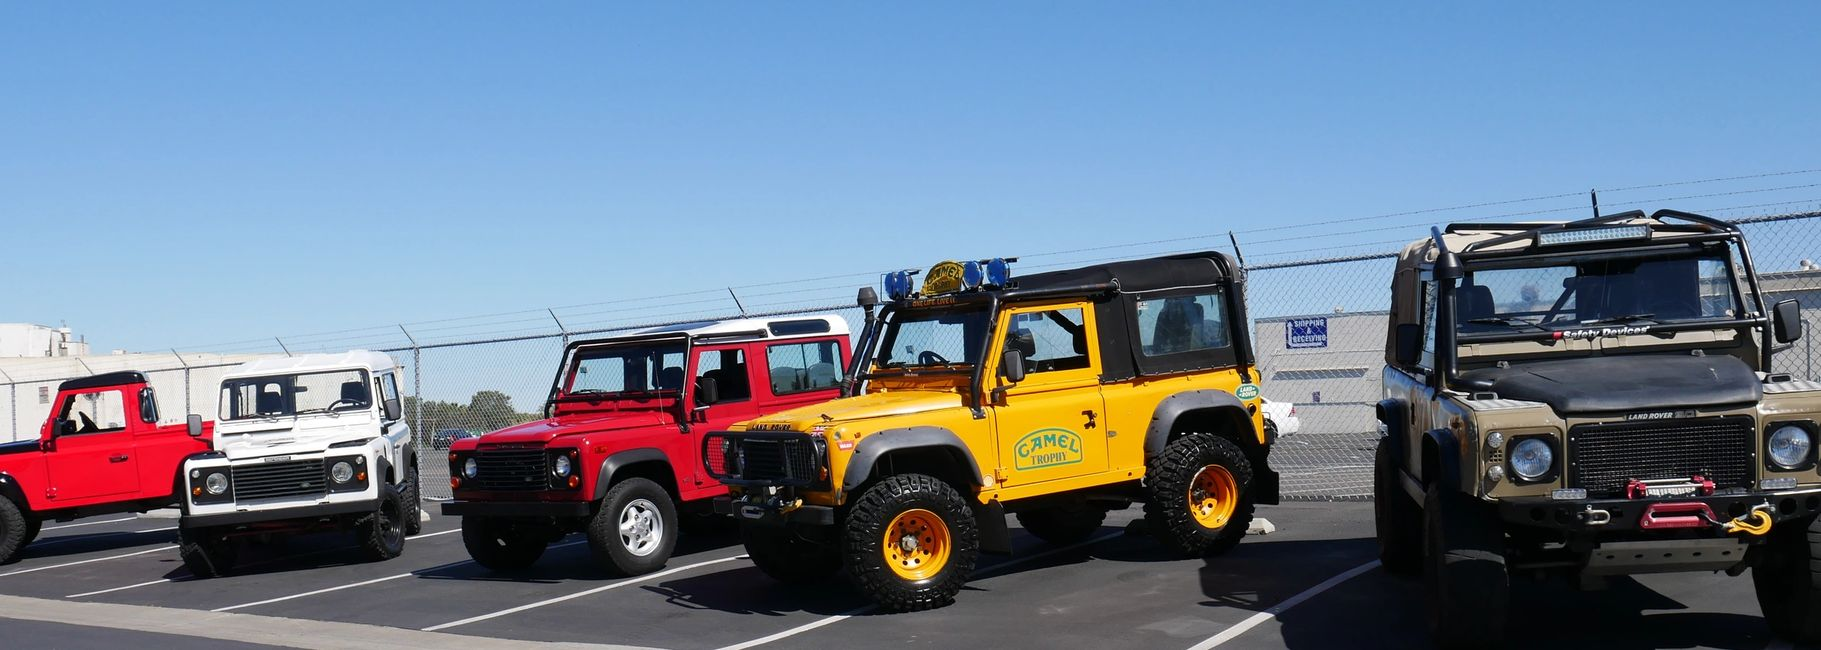 Imported Diesel land rover defenders in San Diego